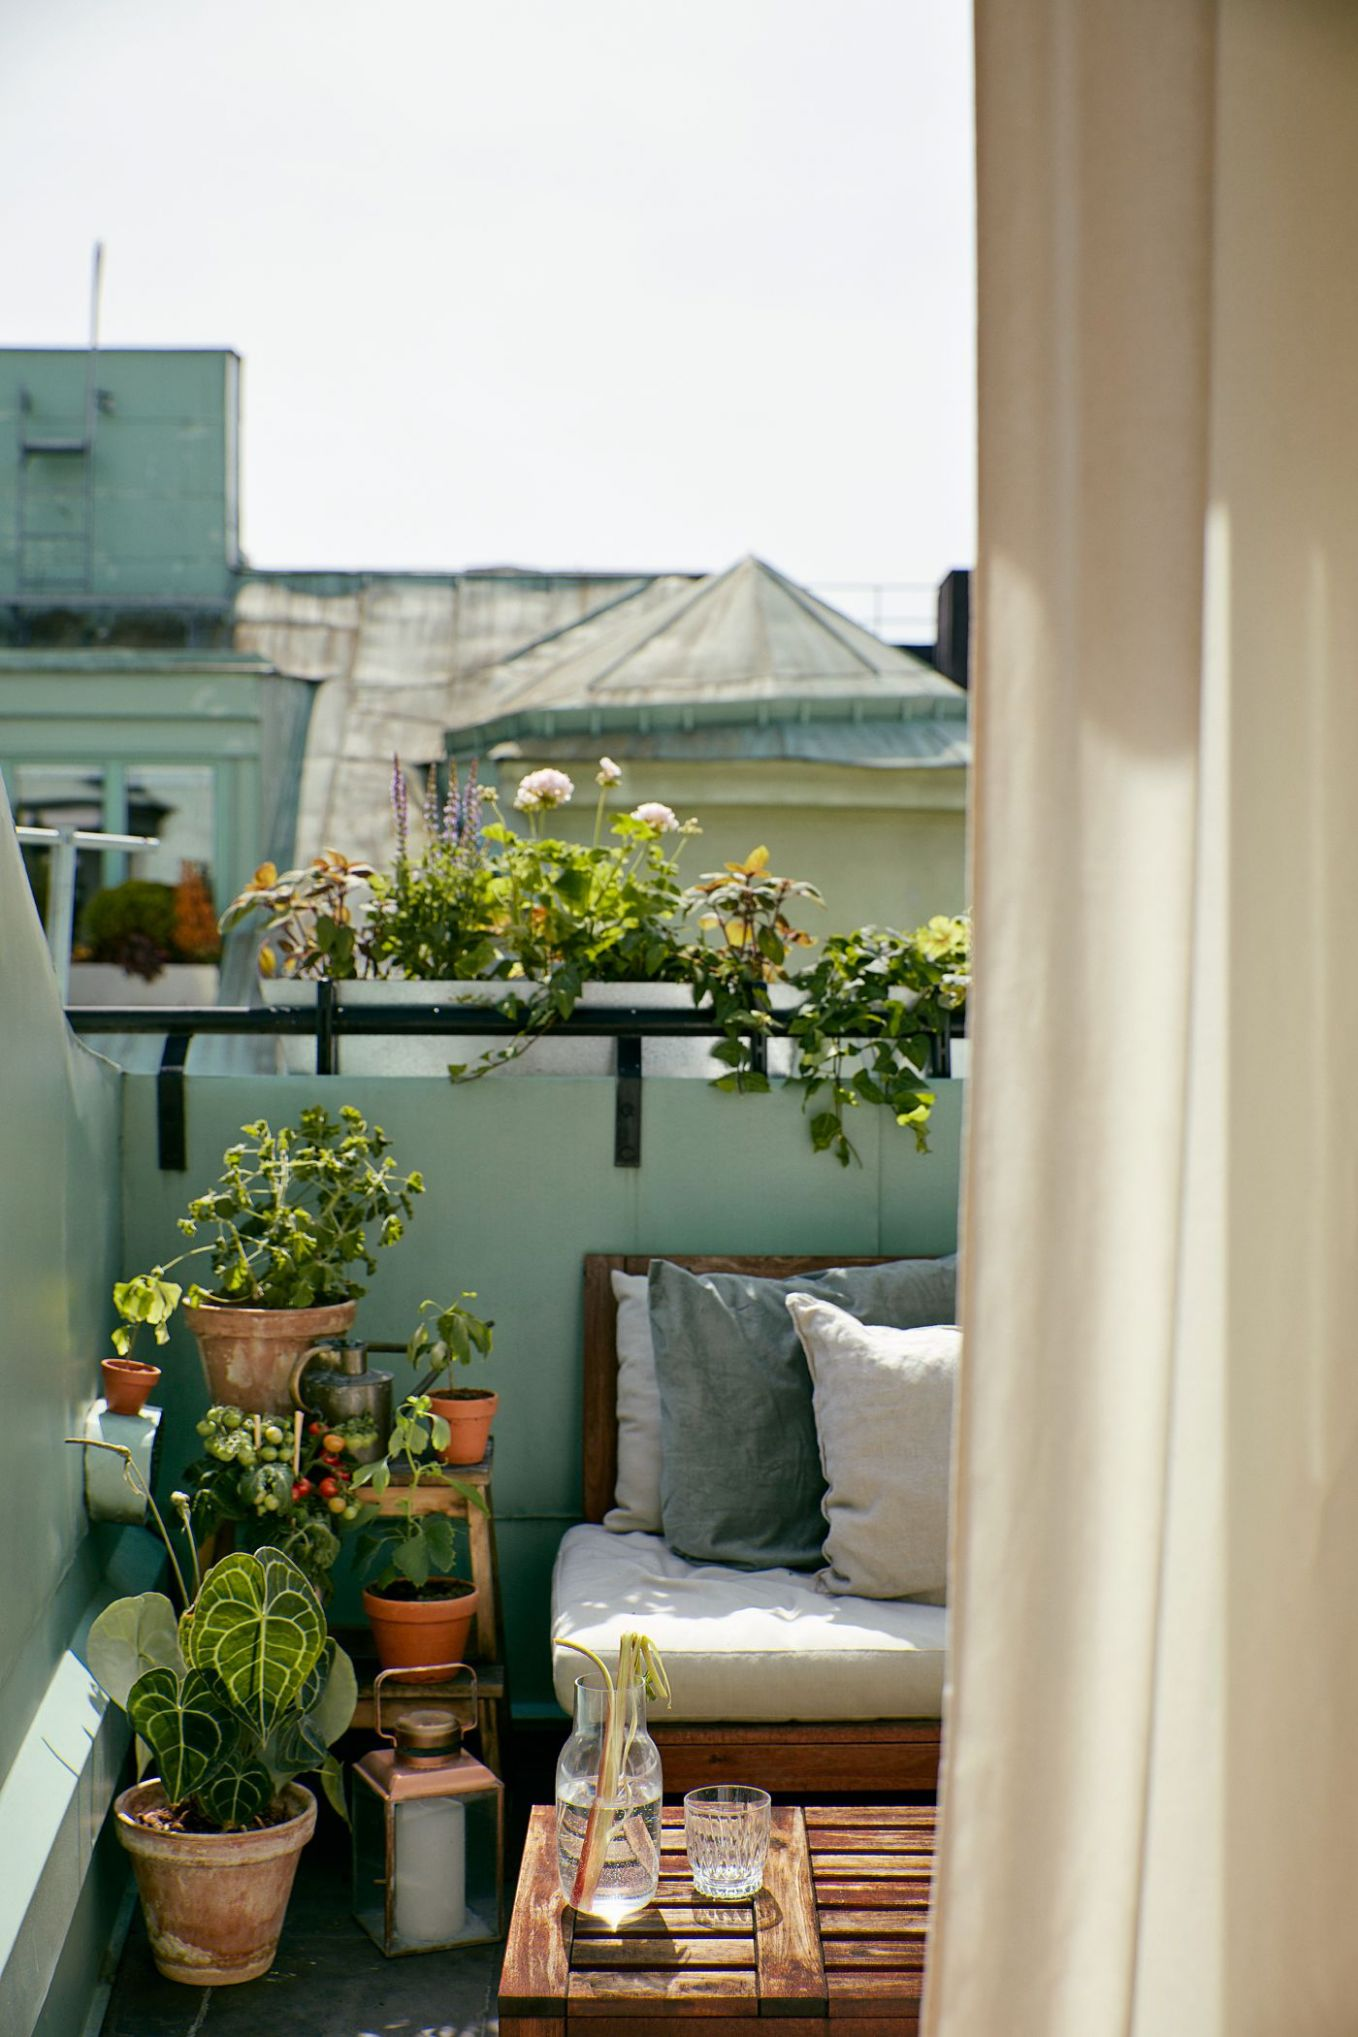 12 Brilliant Balcony Decorating Ideas - Balcony Design Tips - balcony makeover ideas